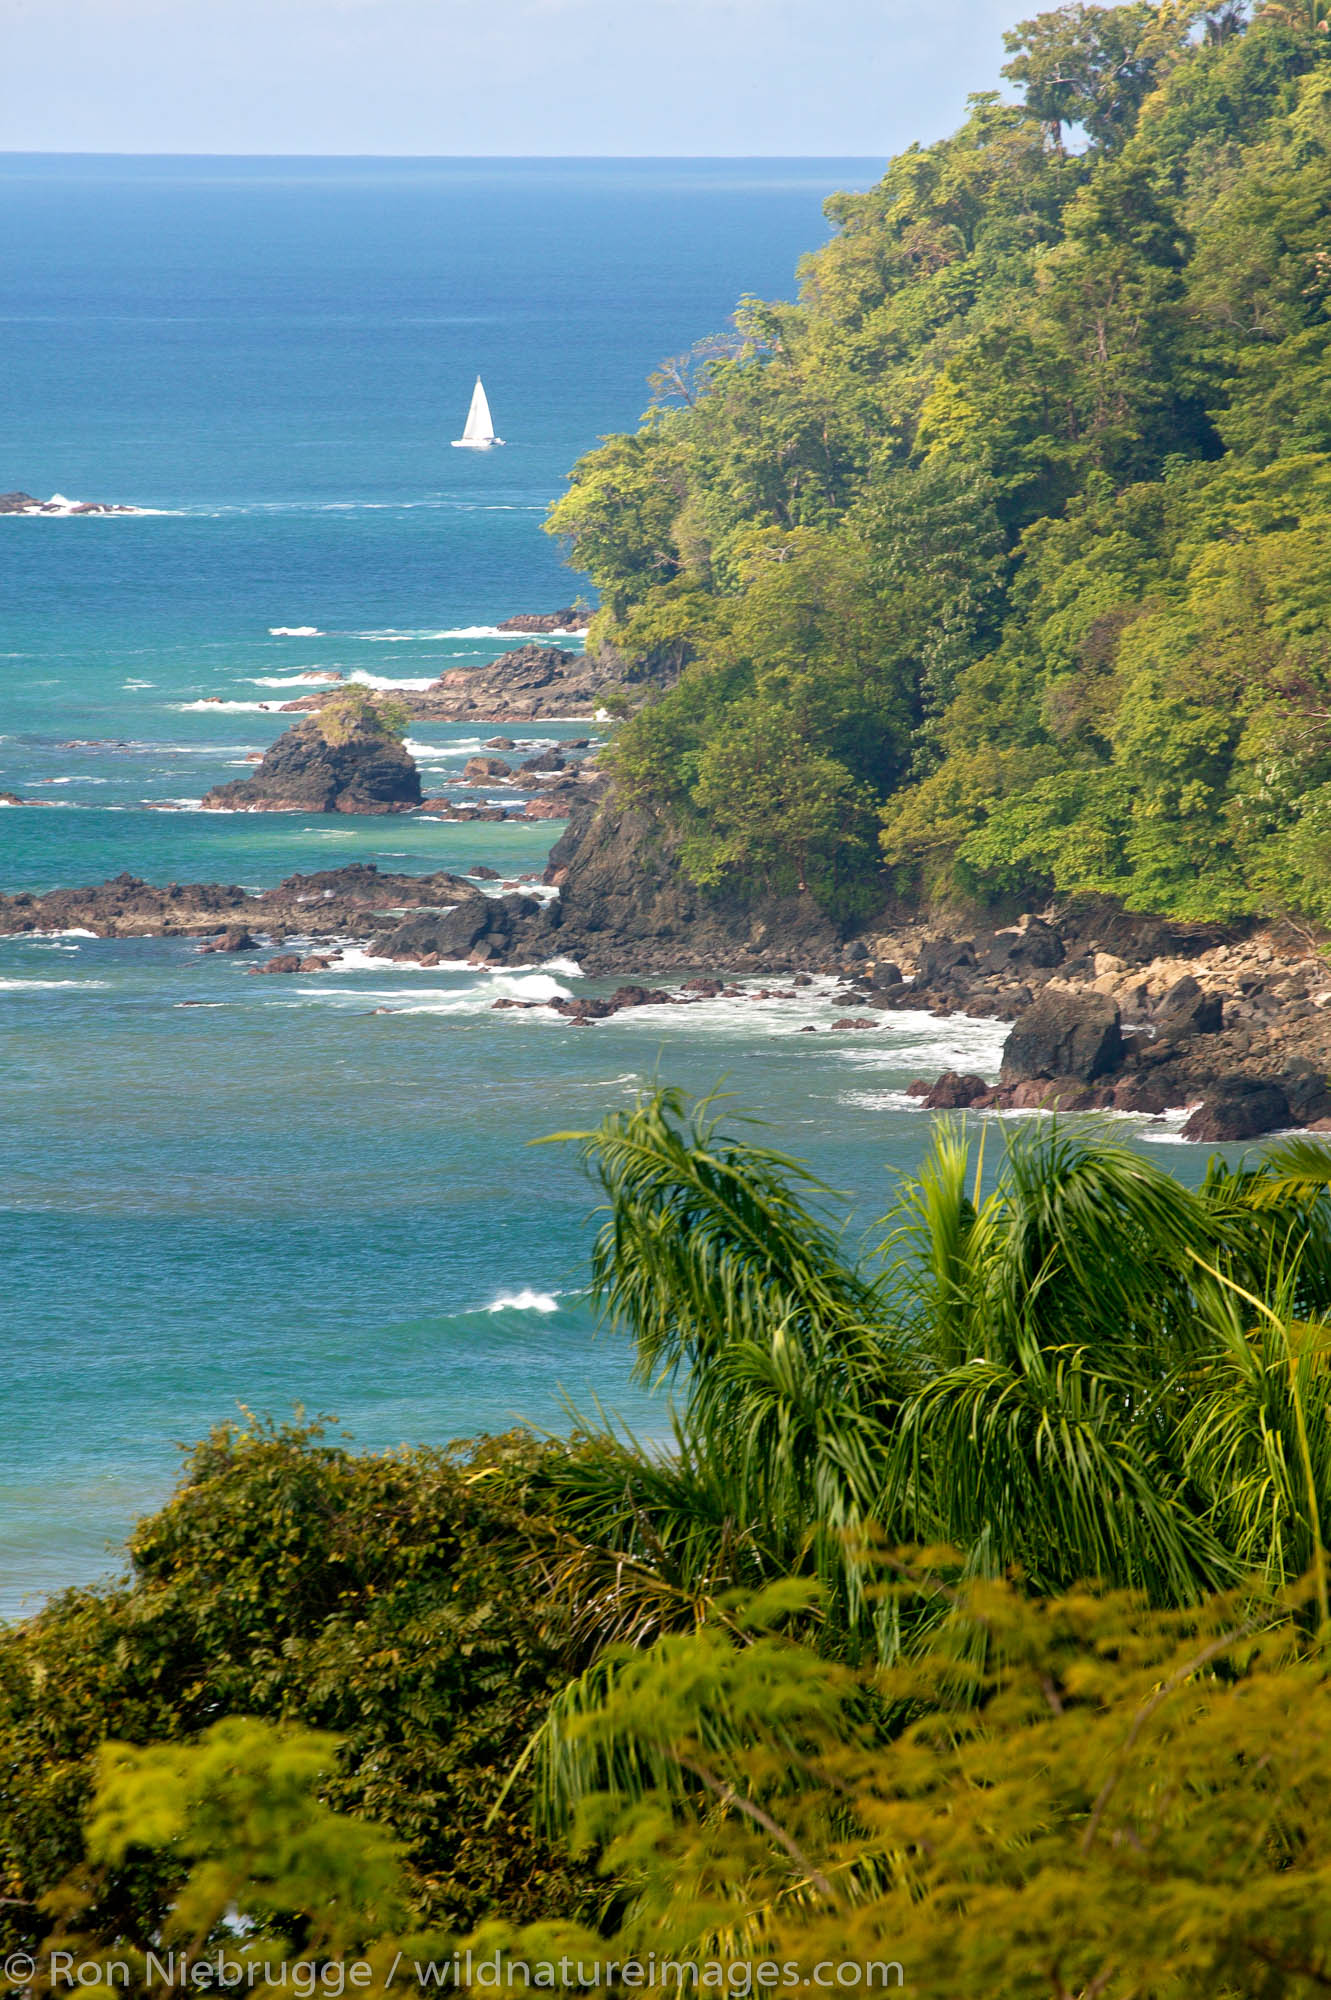 A sailboat and the Pacific Ocean from Manuel Antonio, Costa Rica.